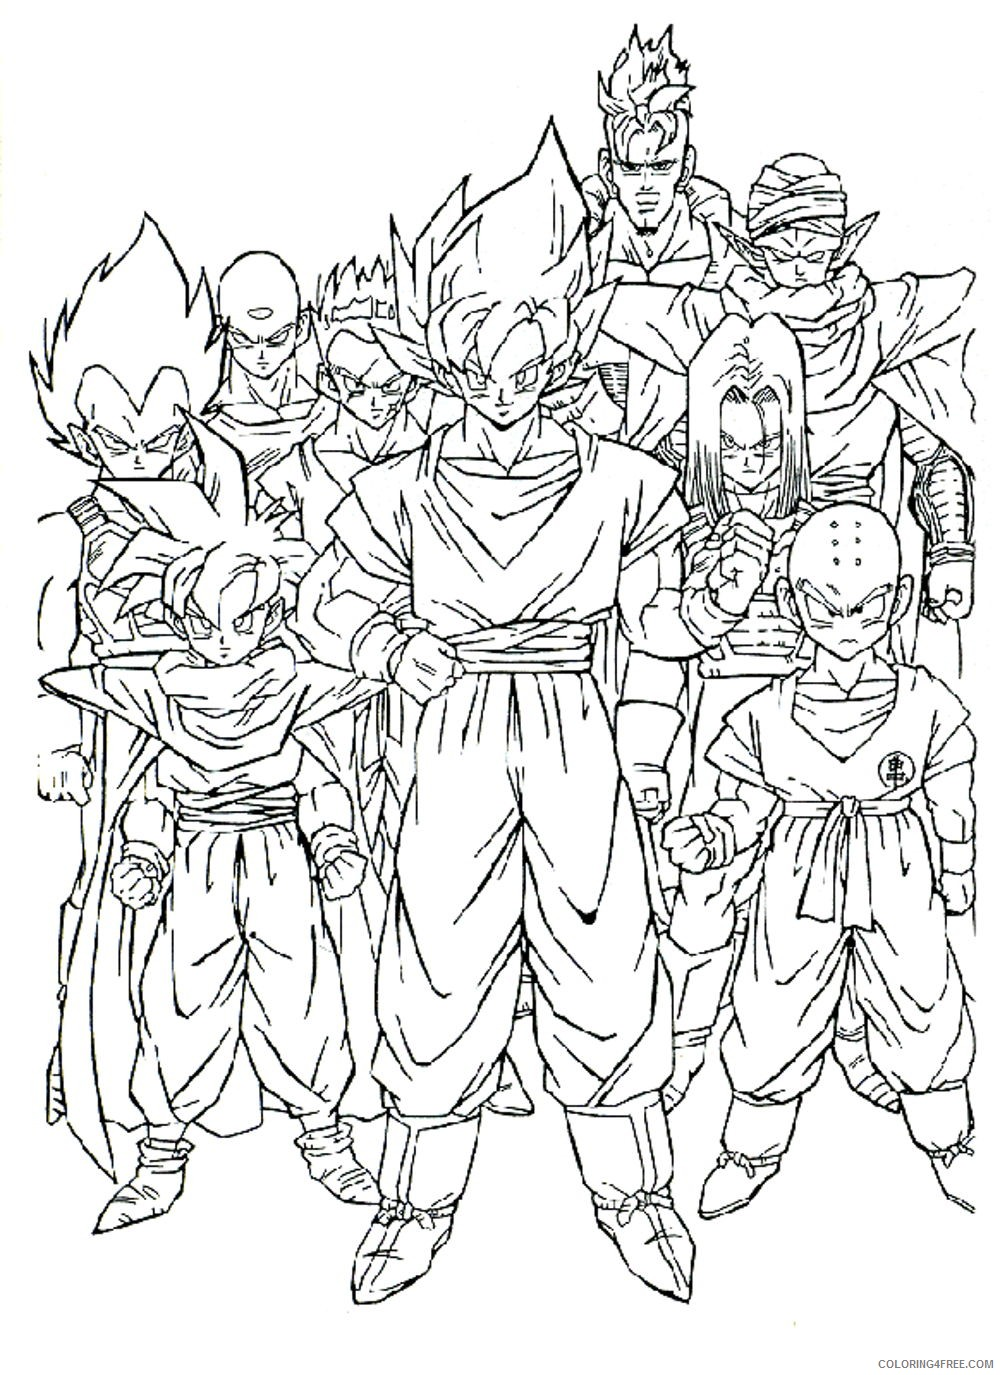 dragon ball z coloring pages all characters Coloring4free